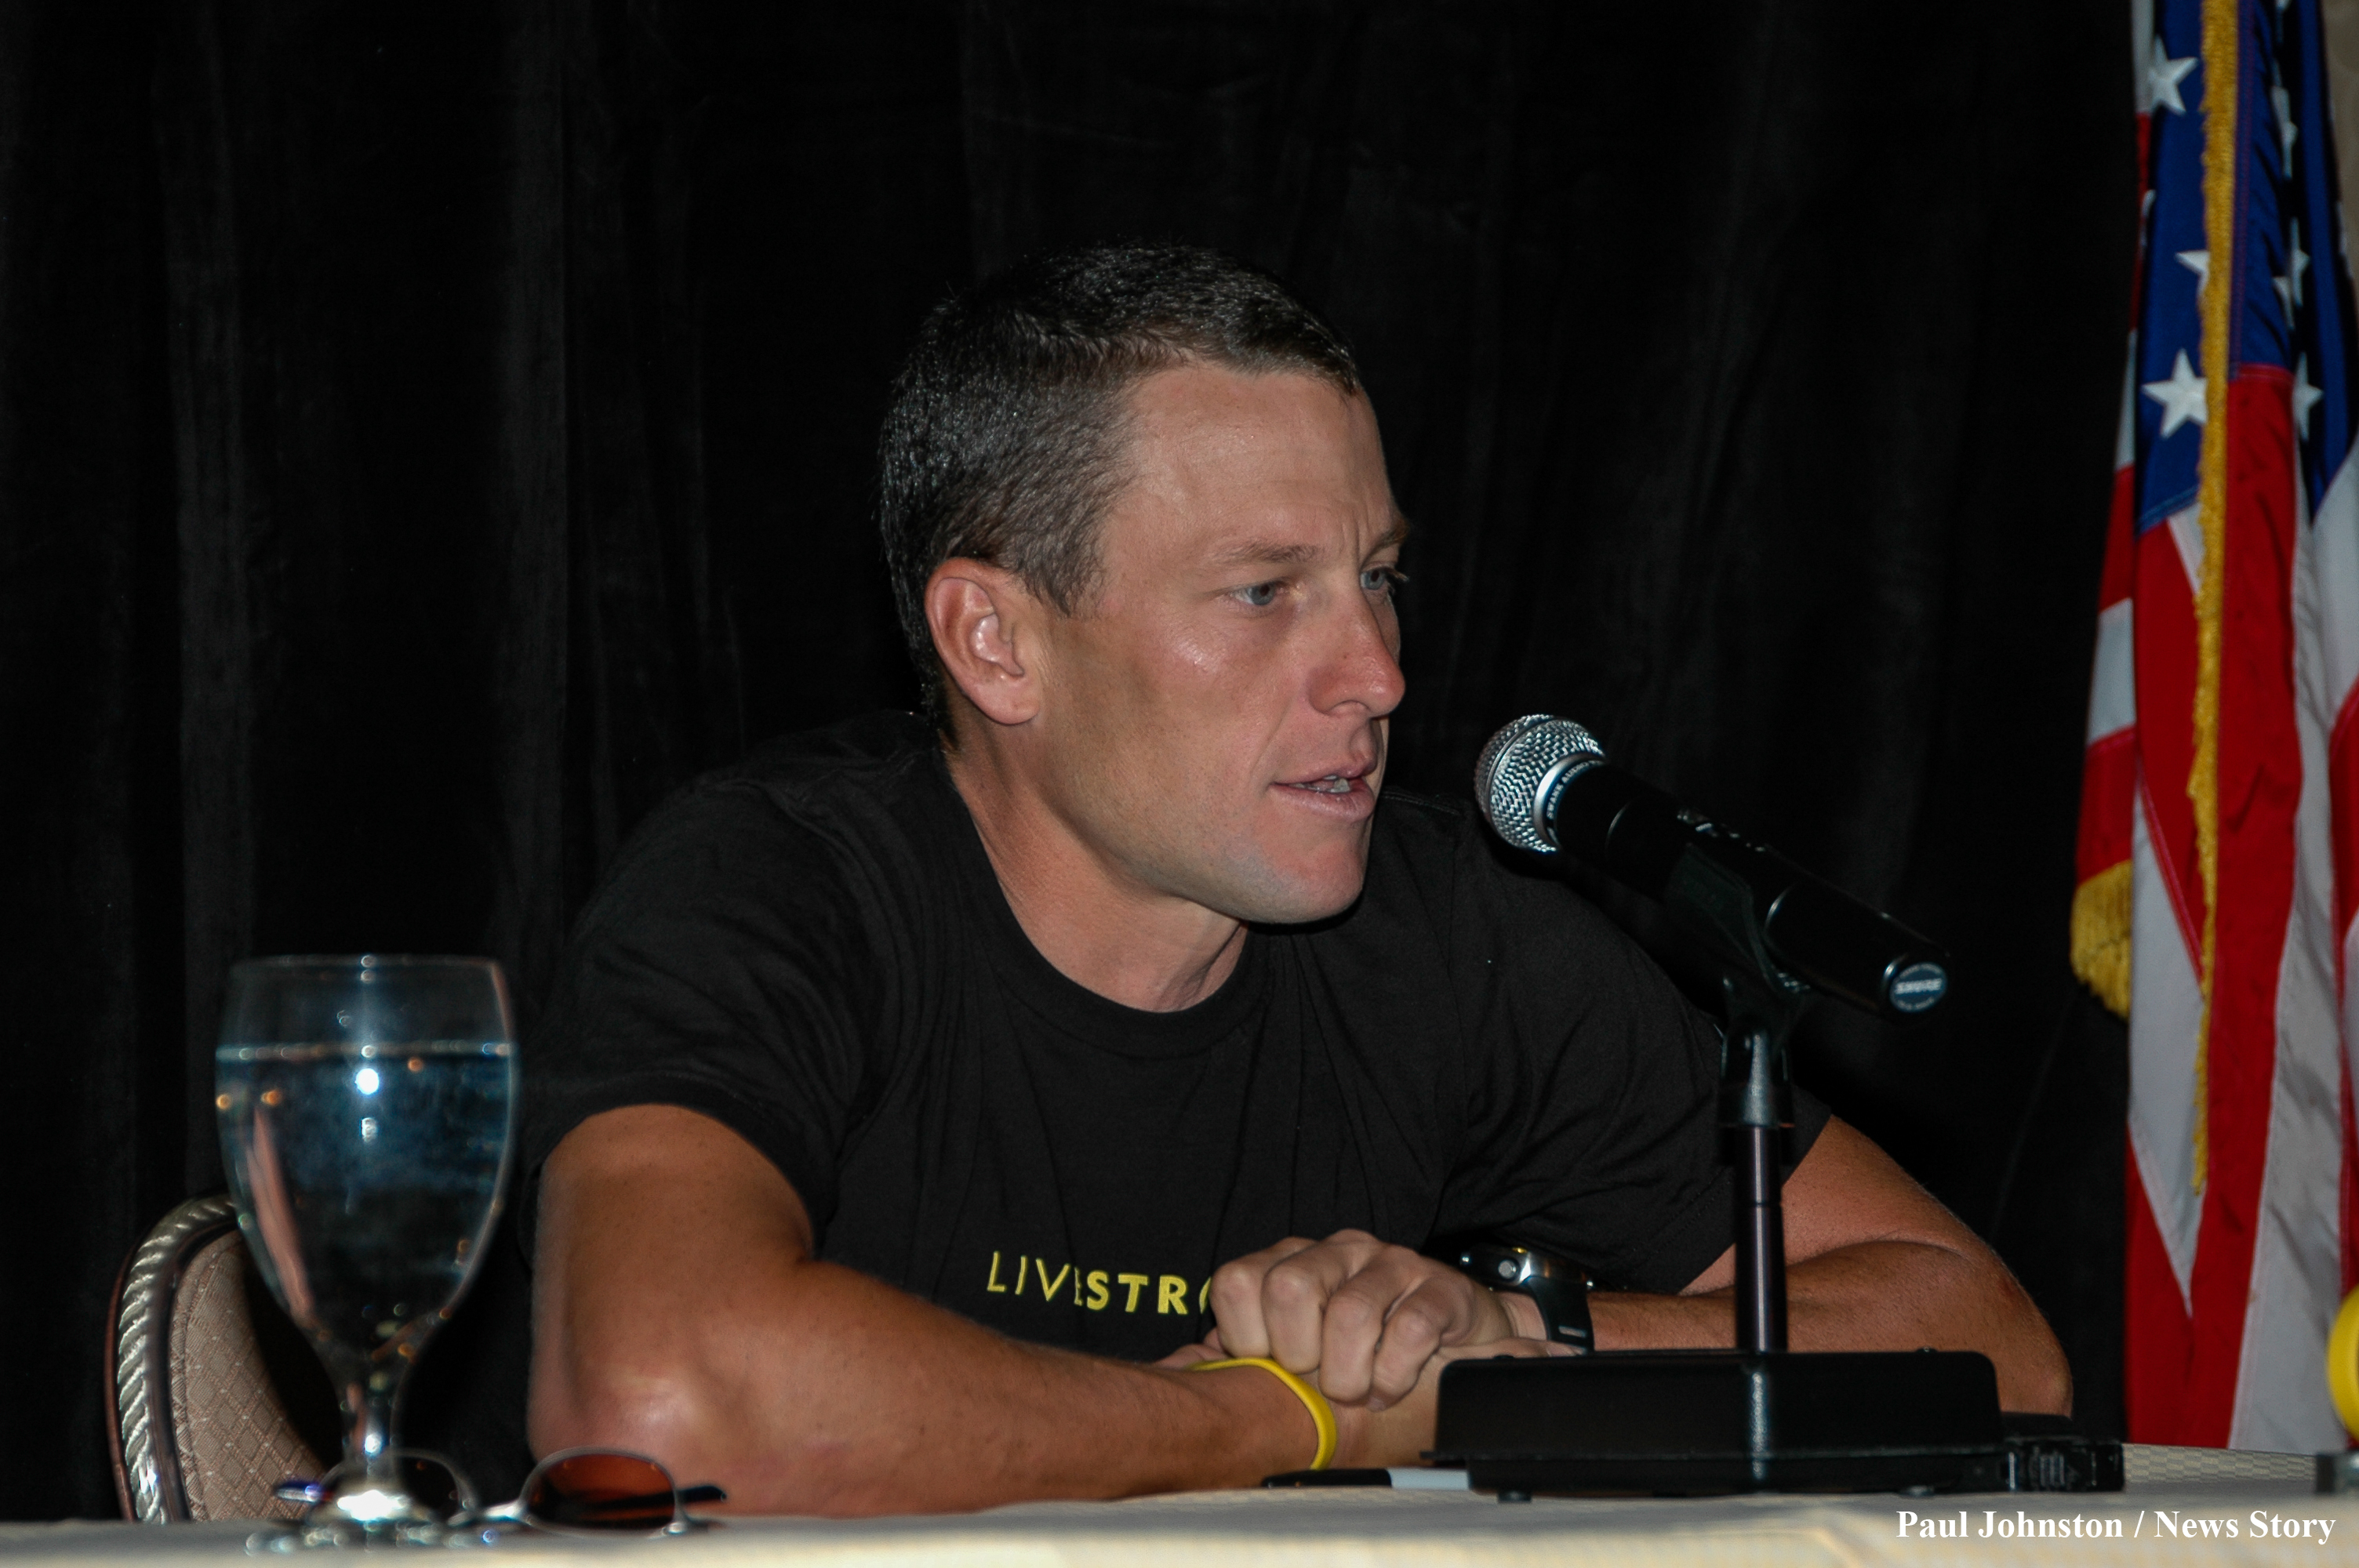 Lance Armstrong , August 13, 2004 - Copyright, Paul Johnston - Austin News Story, austinnewsstory.com